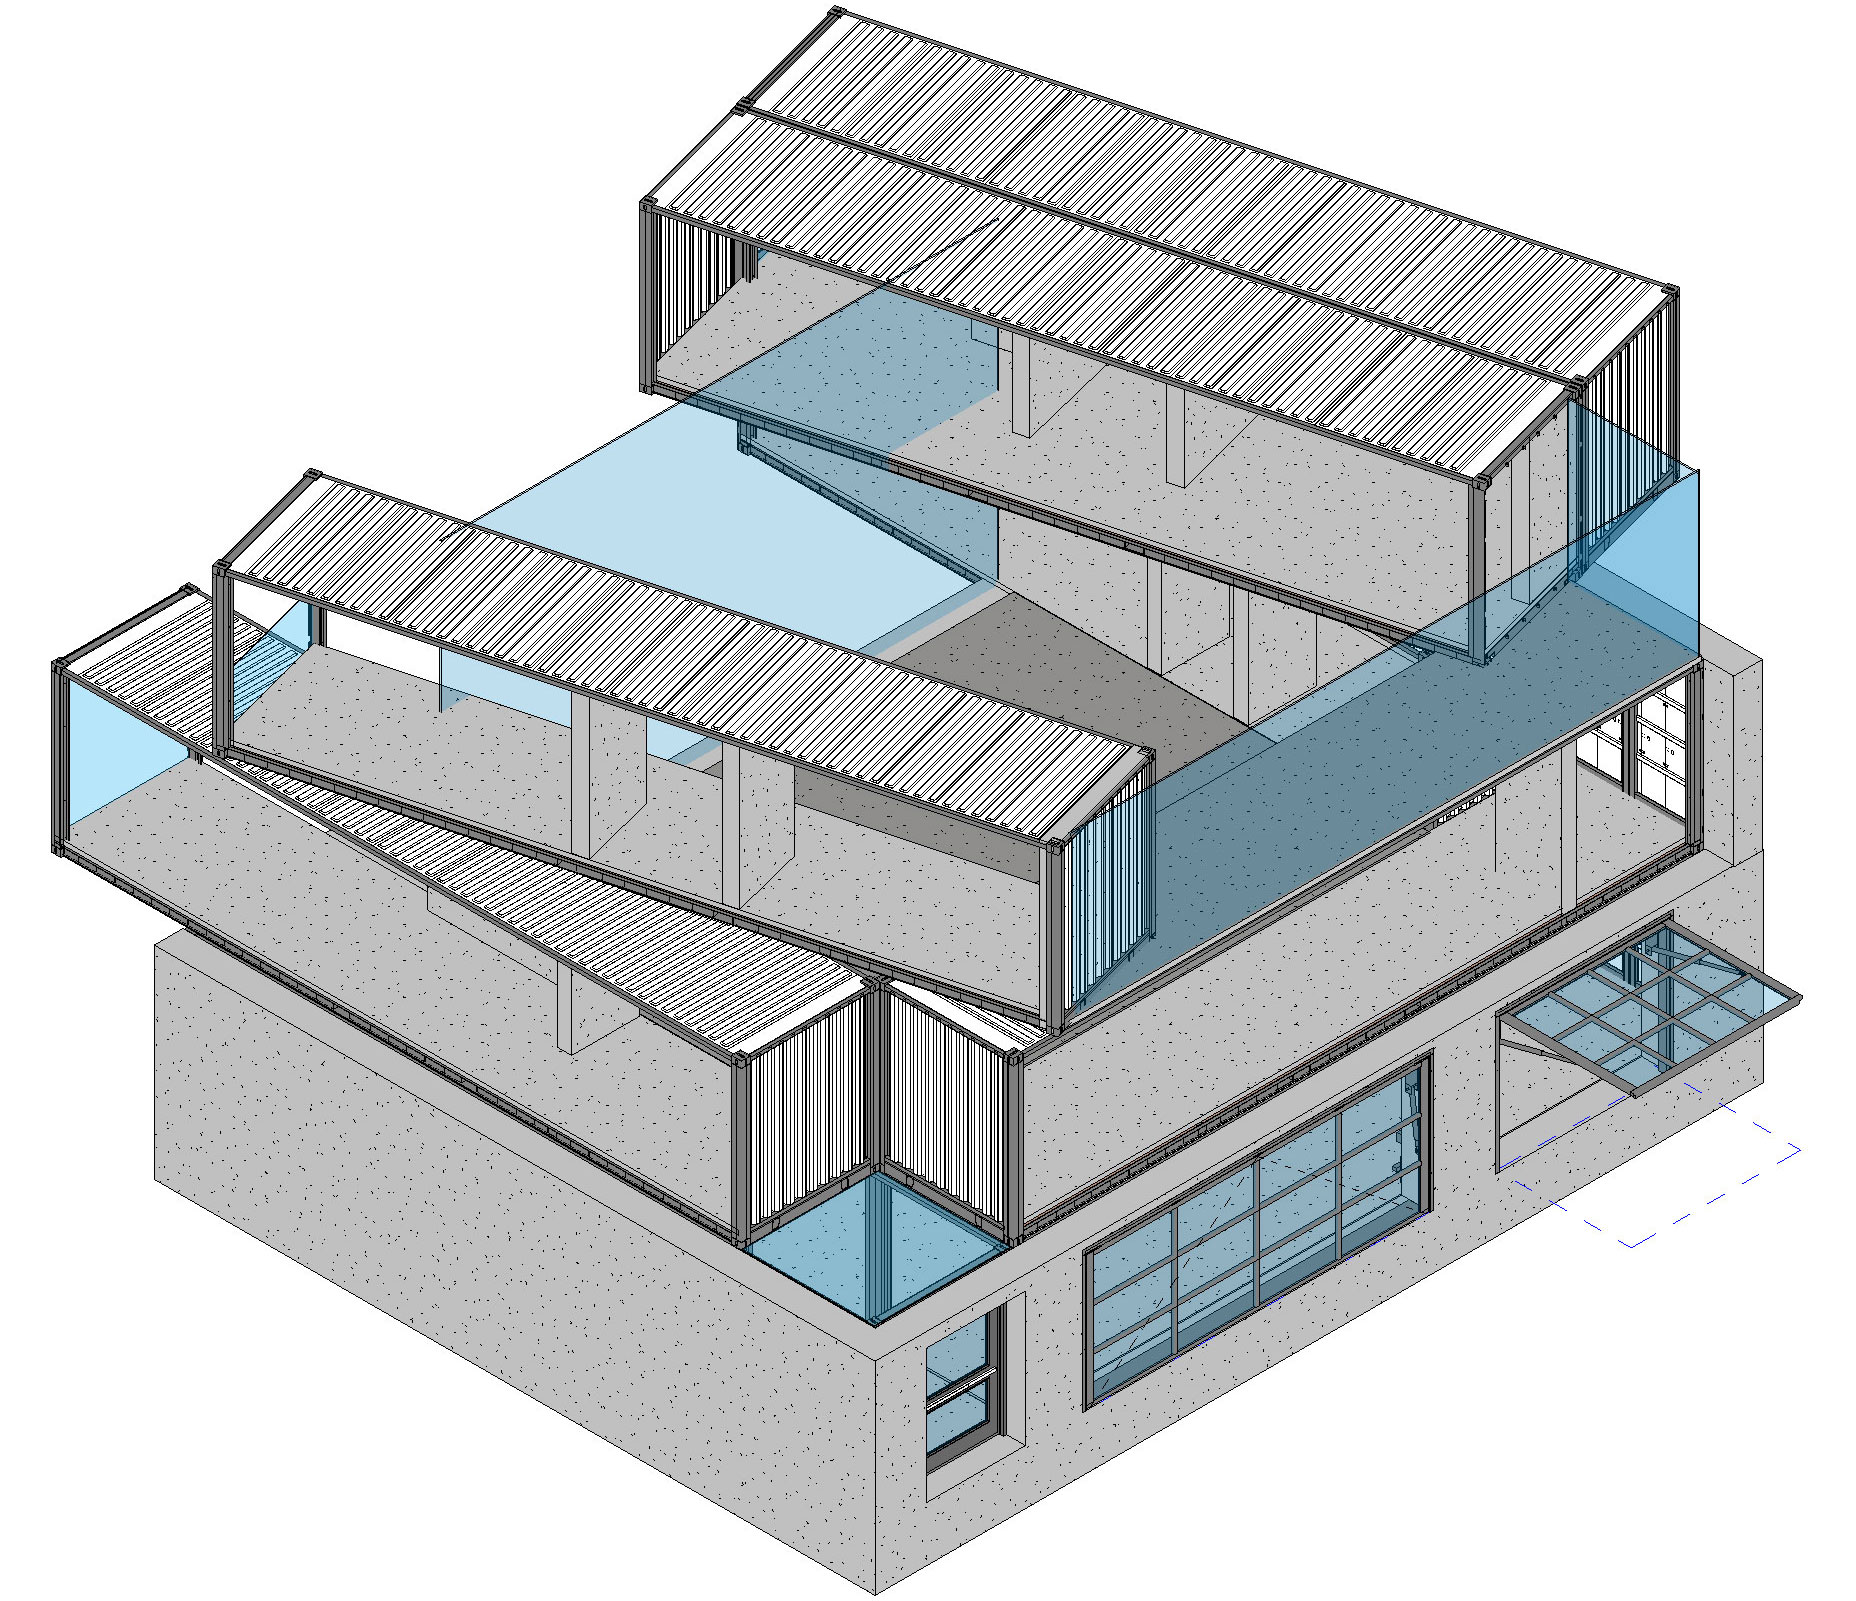 Mass model built in revit eco industrial house recycle reuse homes - Revit home design ...